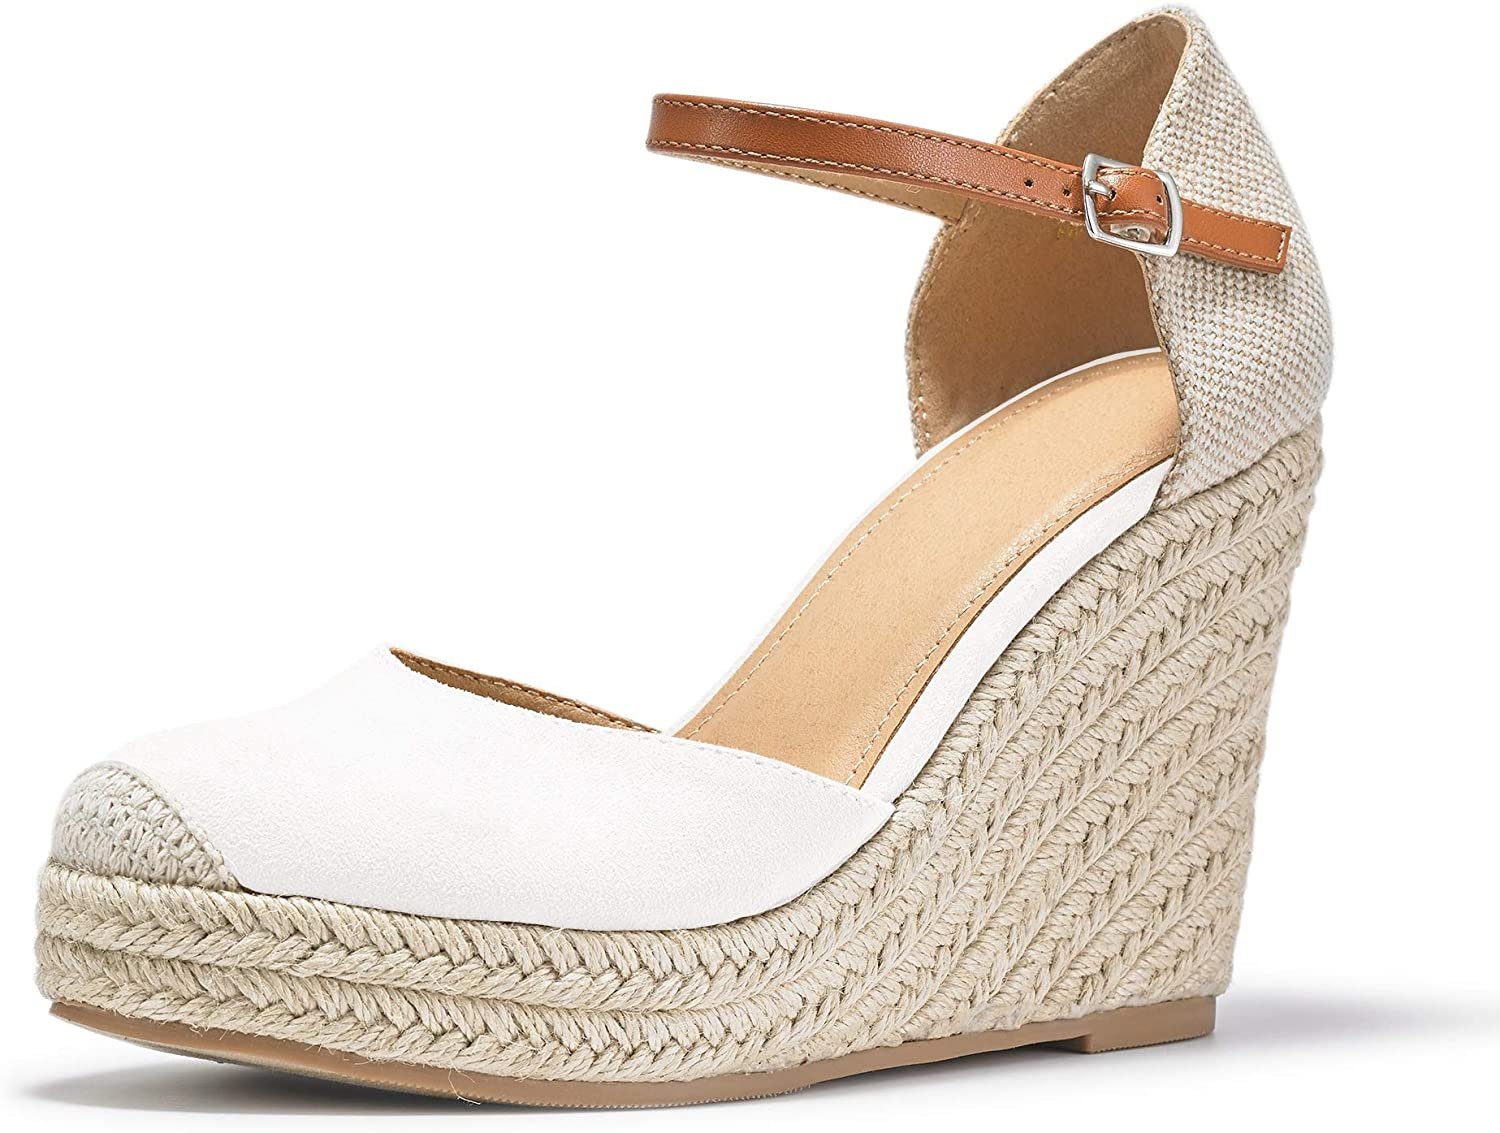 FISACE Womens Summer Espadrille Heel Platform Sandals Wedge Ankl Free shipping / New Super popular specialty store